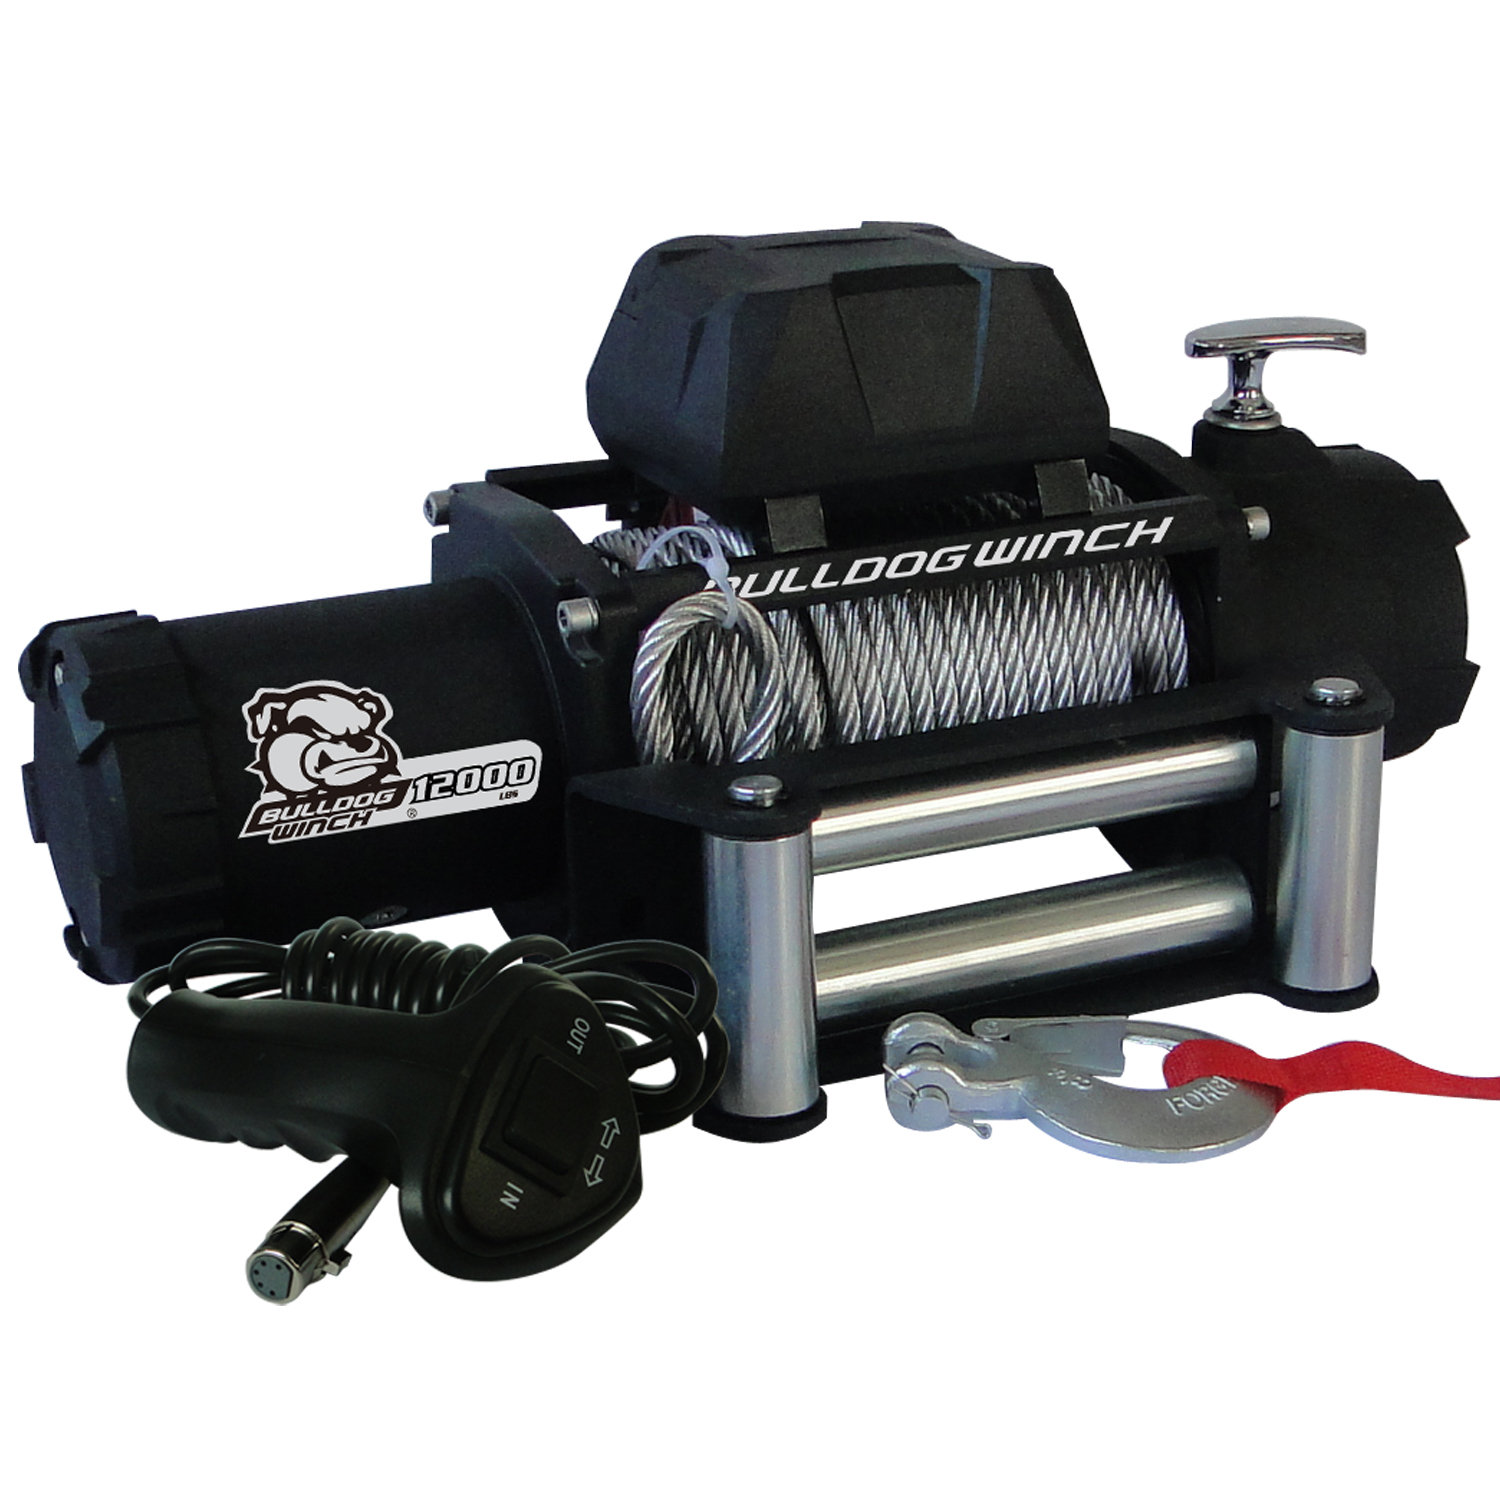 12,00 LB Winch 100 Ft Wire Rope 6.0hp Series Wound Motor Roller Fairlead Bulldog Winch